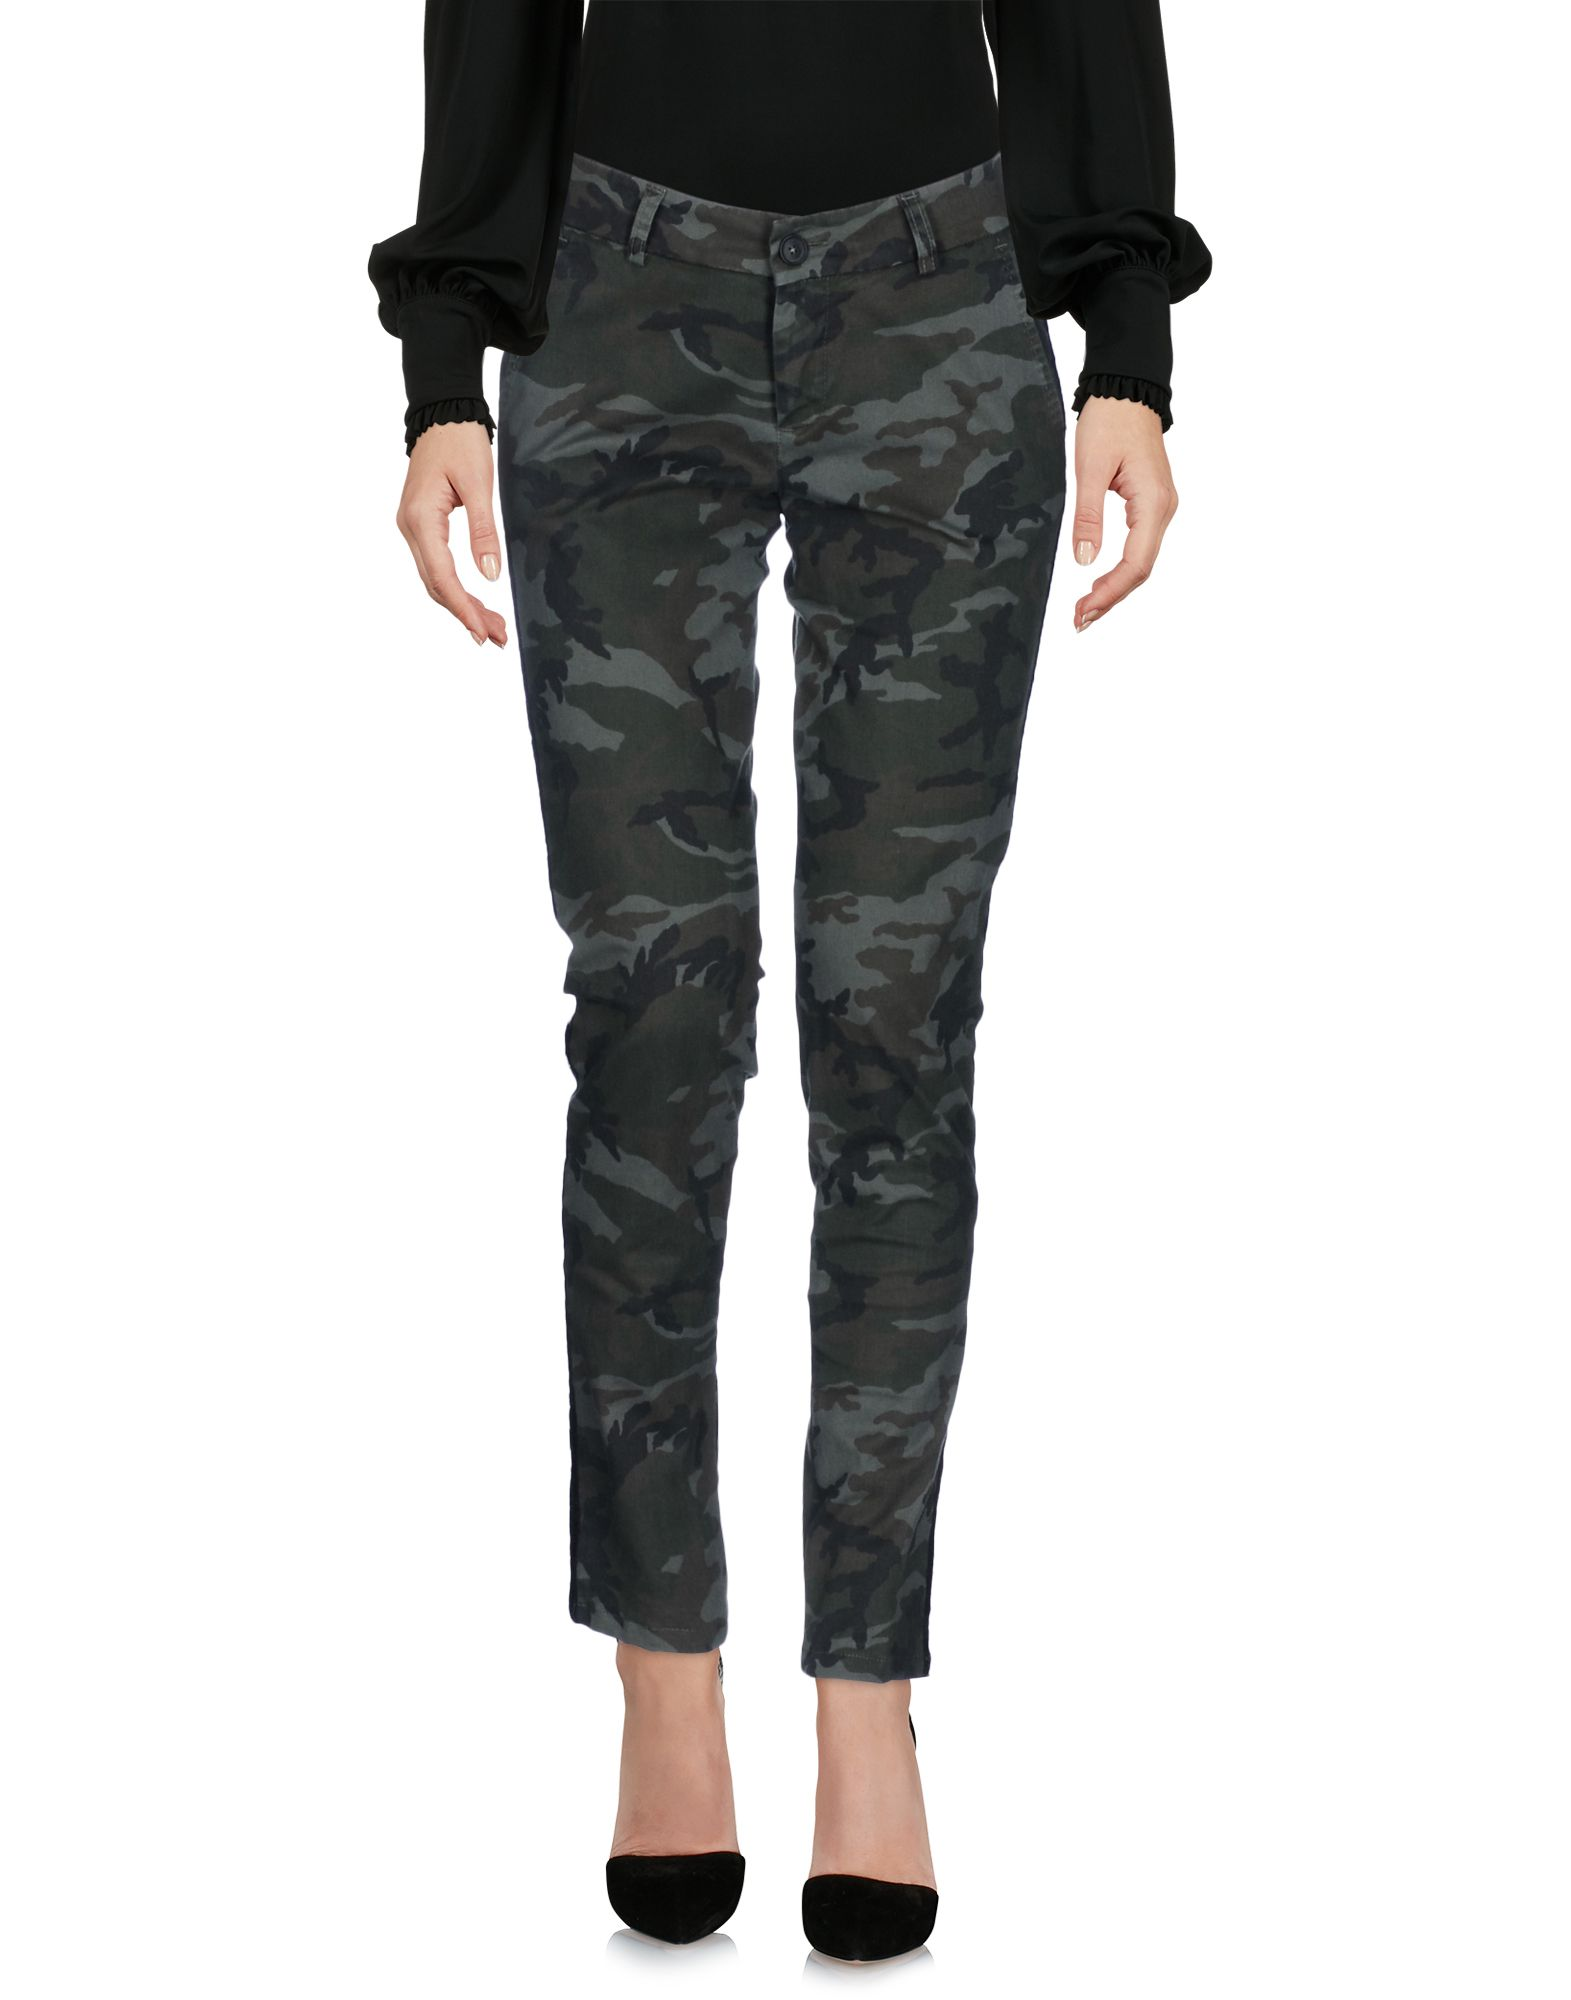 Pantalone Another Label Donna - Acquista online su DhRpMQ7